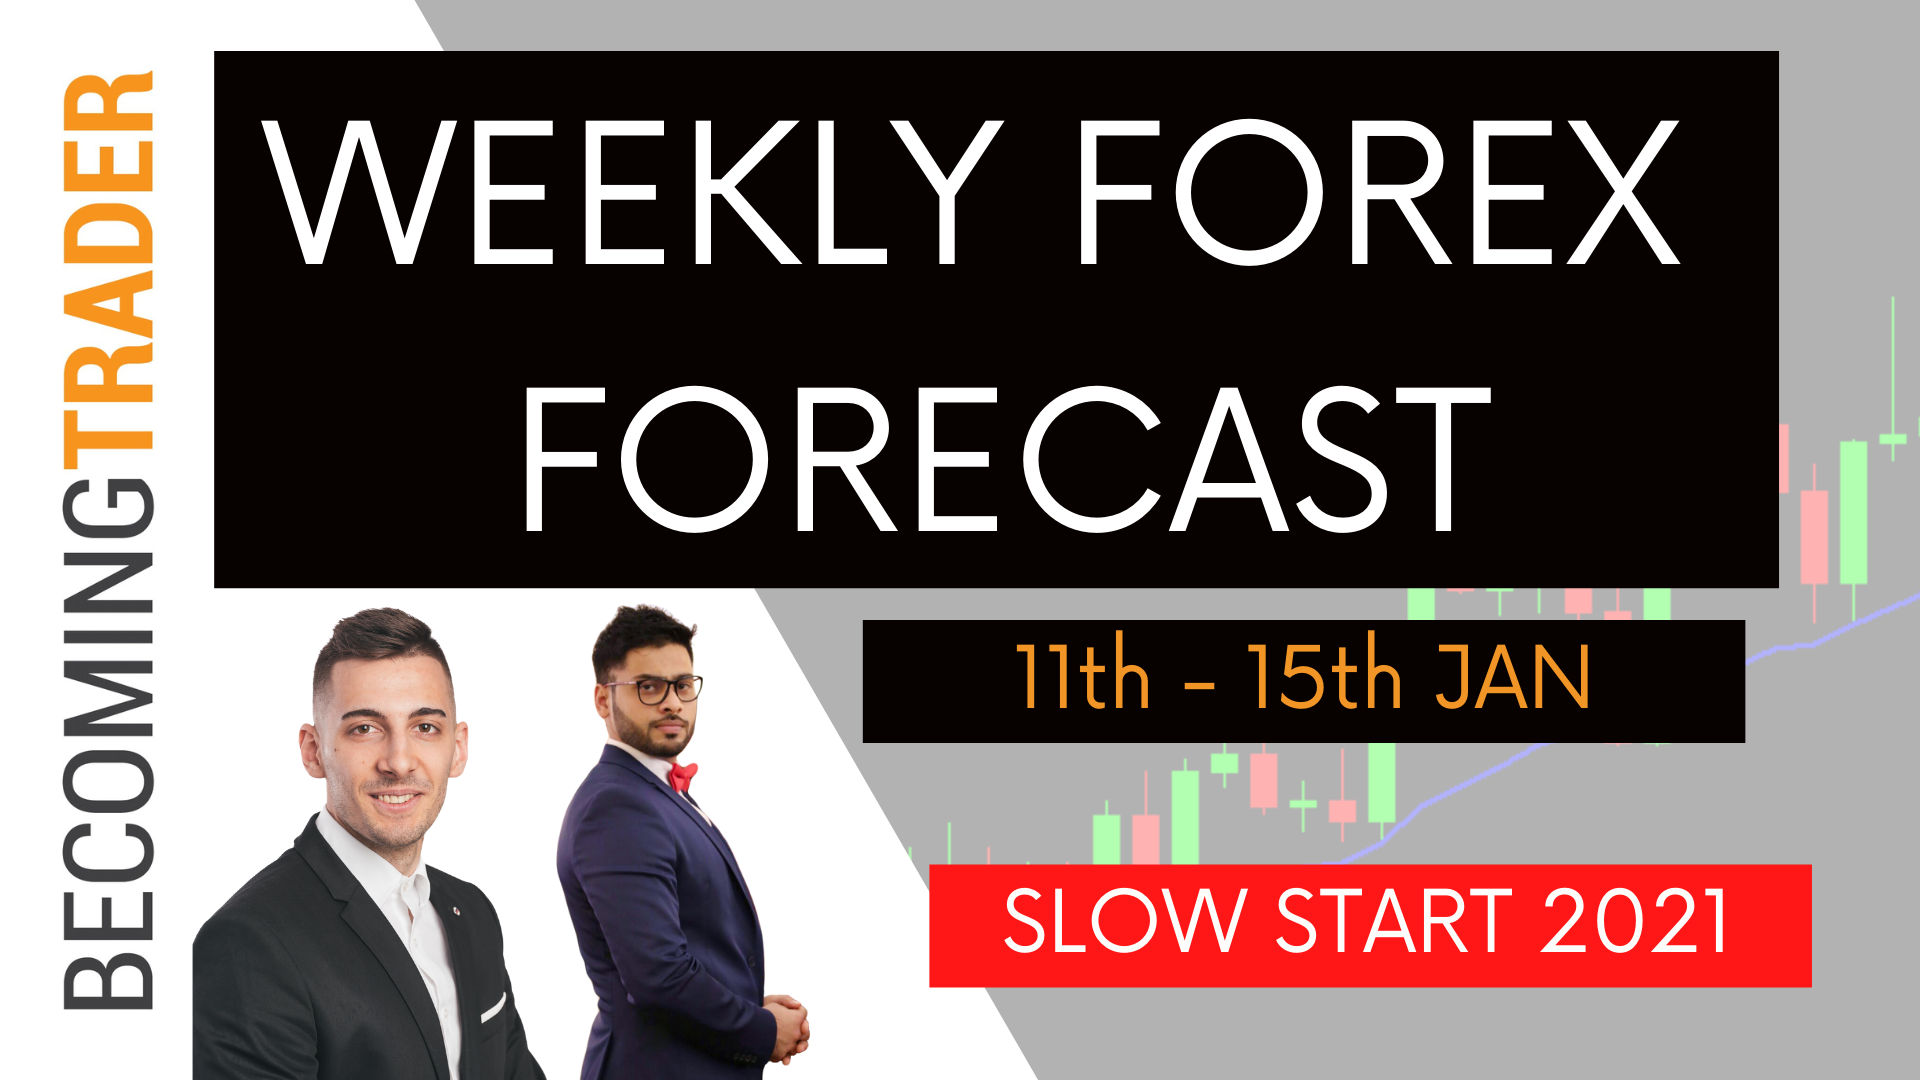 Weekly Forex Forecast 11th to 15th January 2021 | Slow Start of 2021